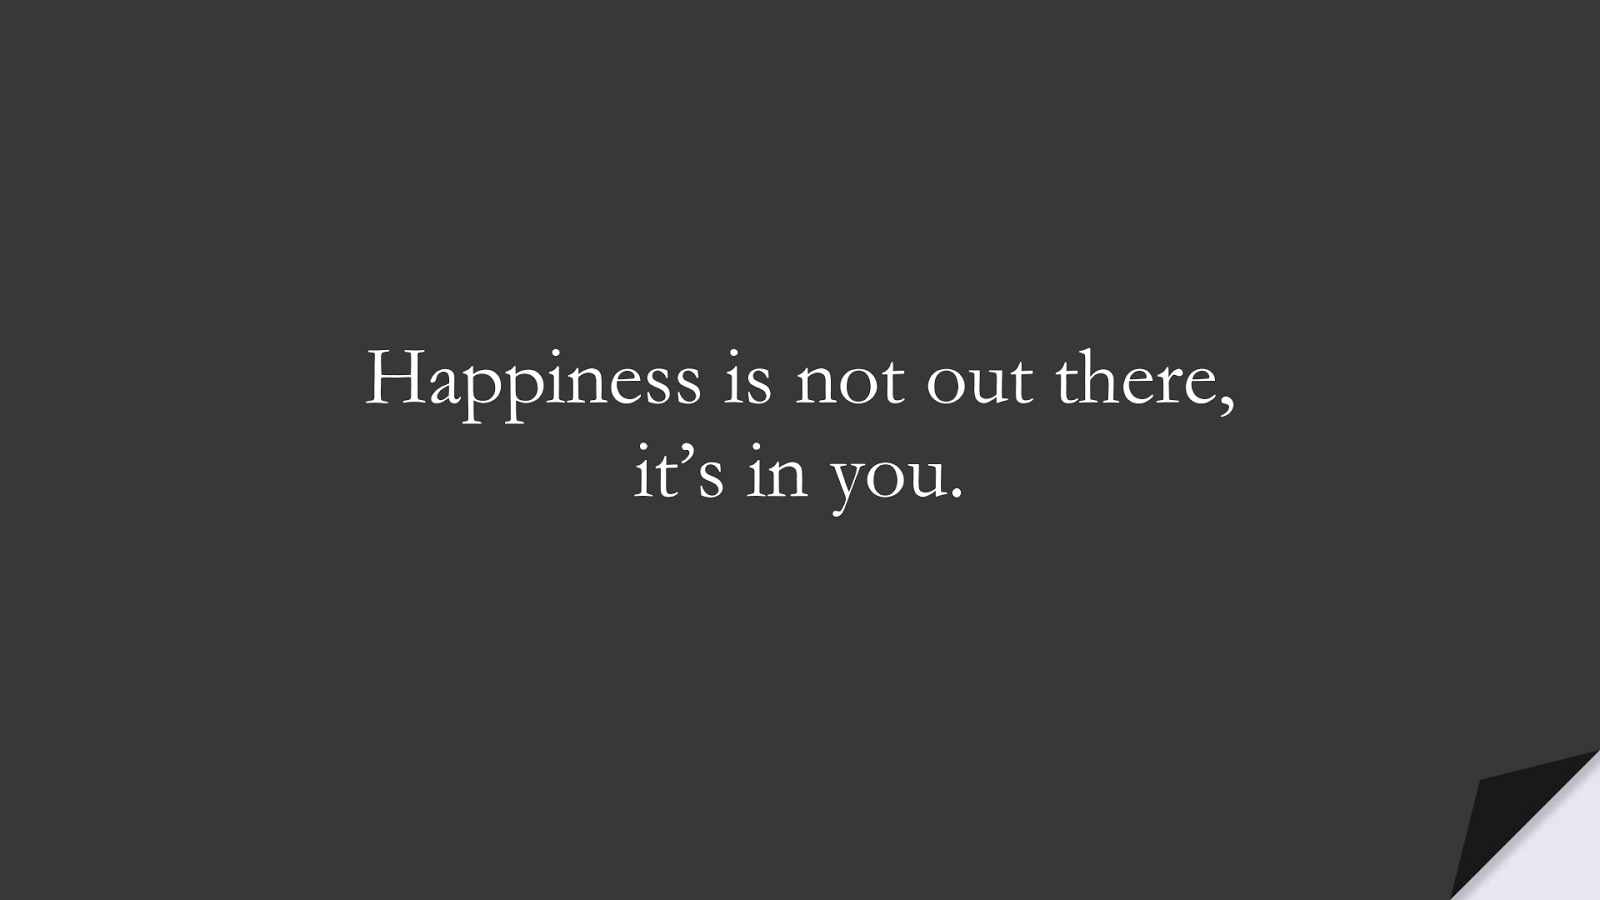 Happiness is not out there, it's in you.FALSE